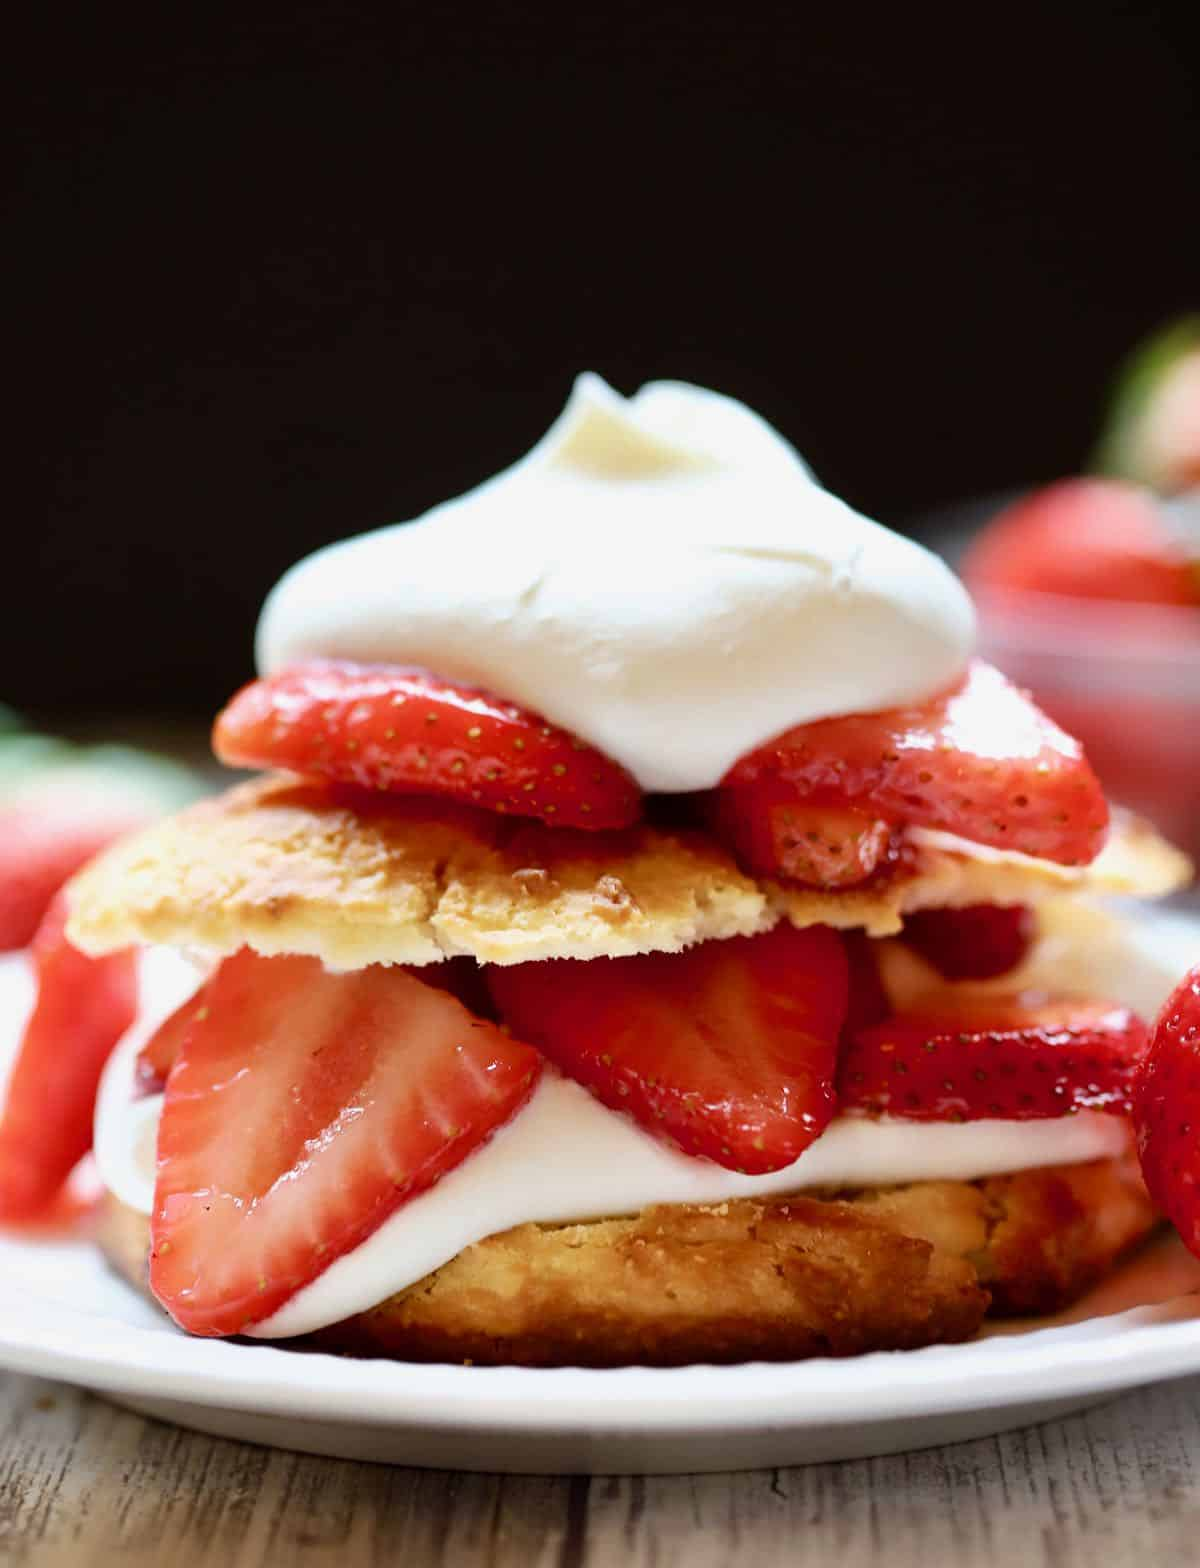 Southern strawberry shortcake on a plate with fresh strawberries.